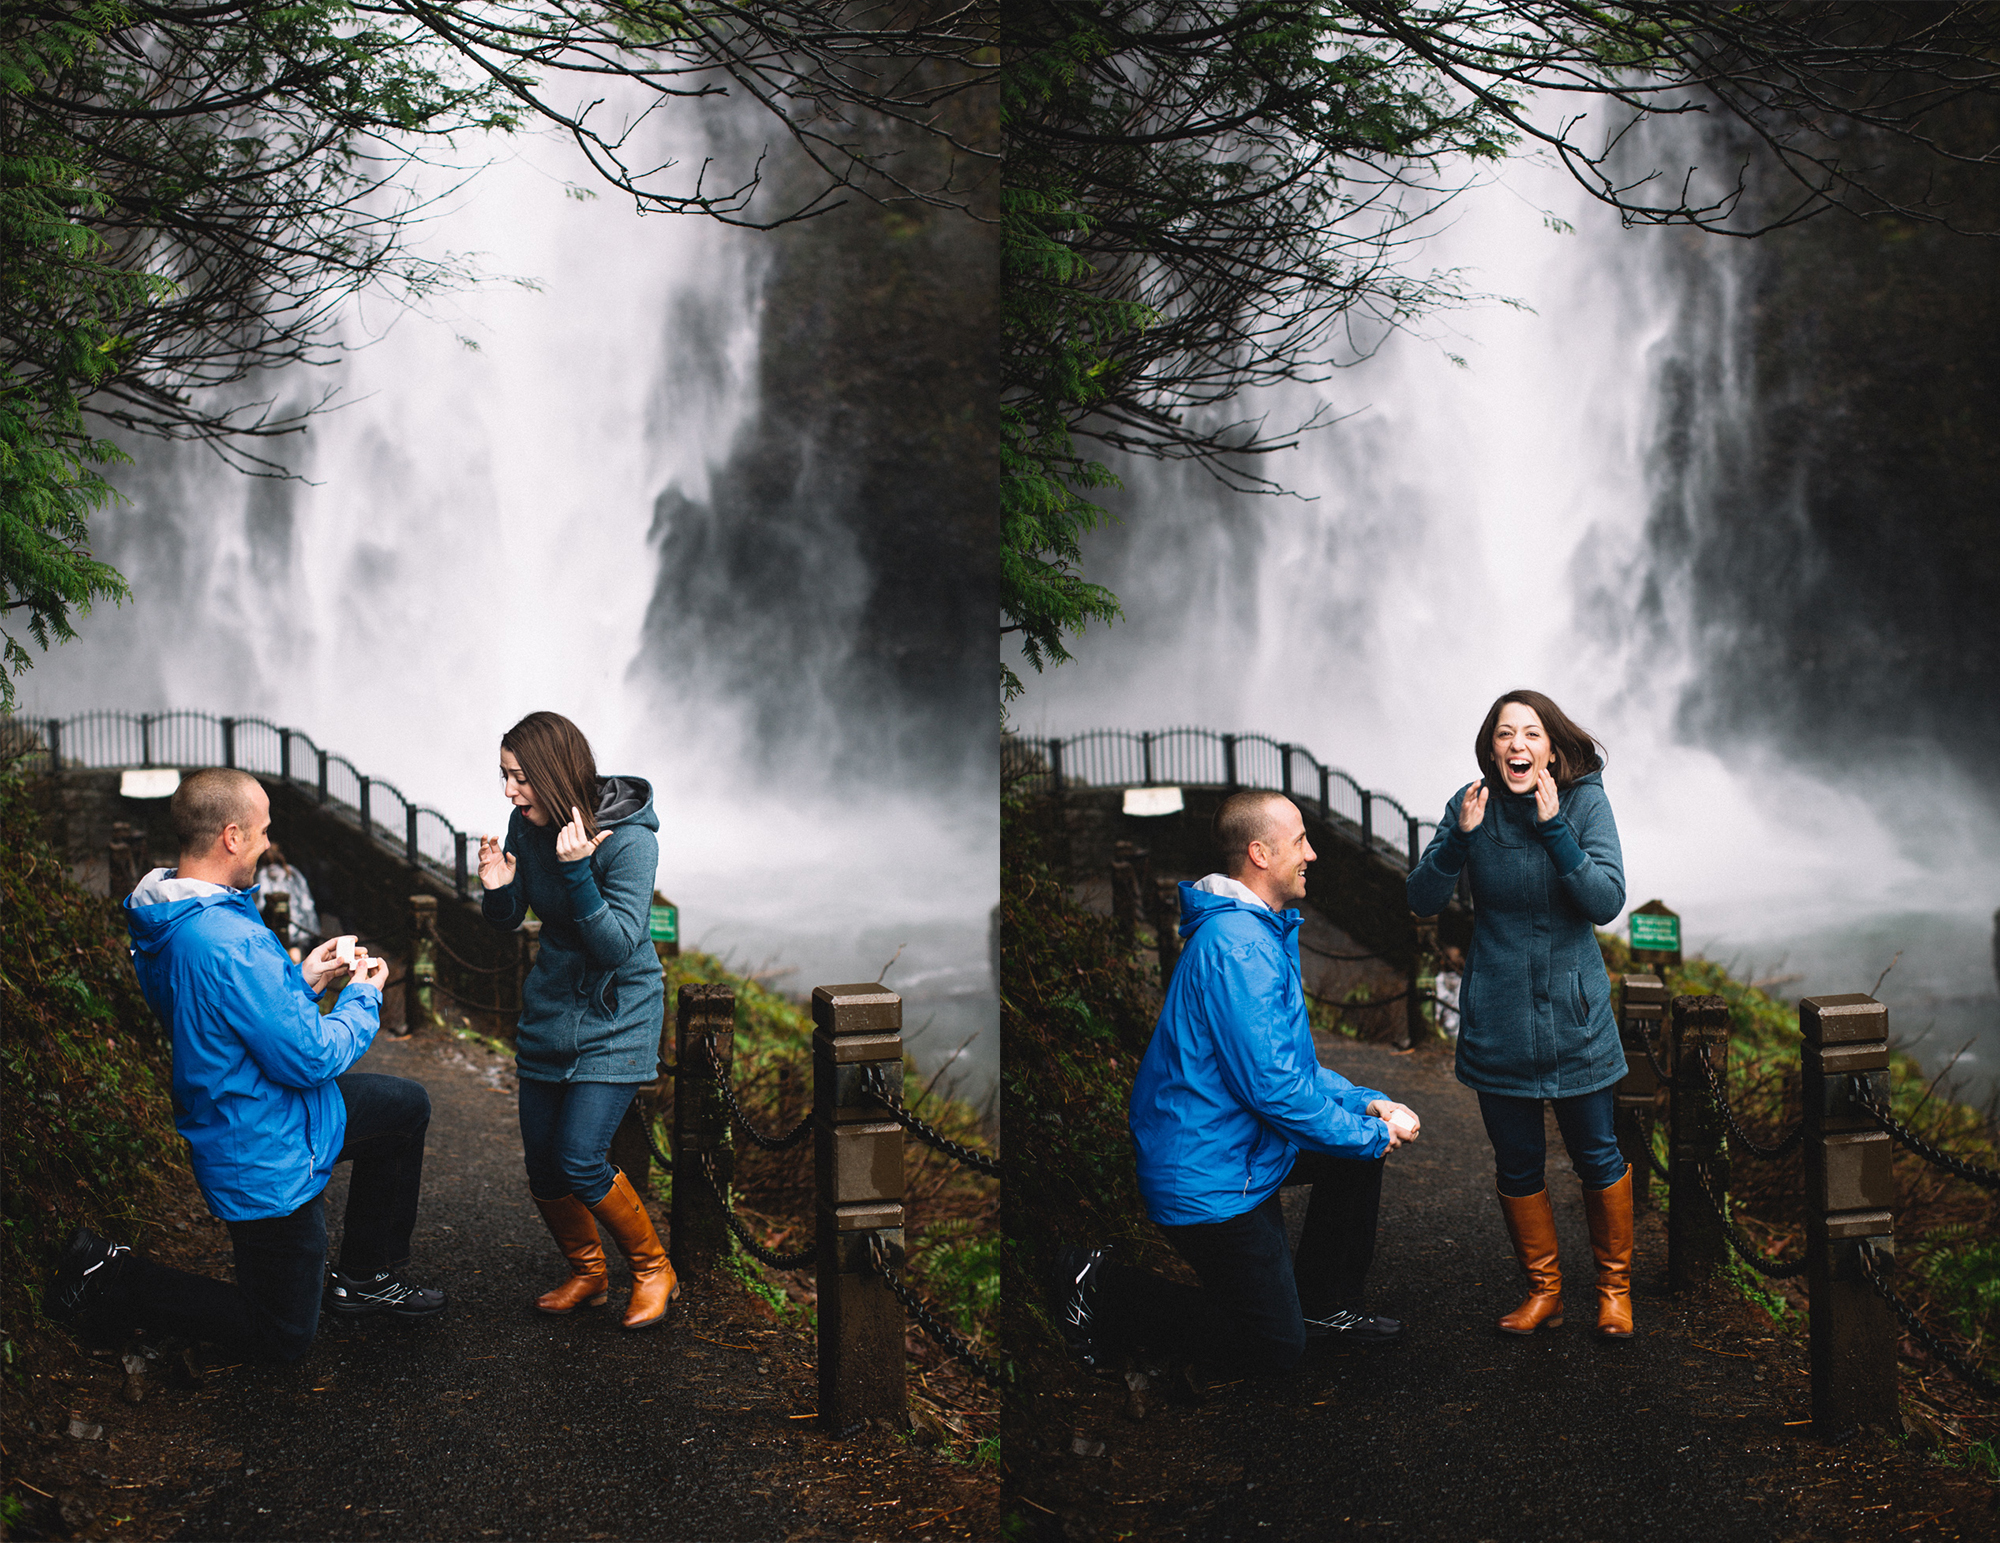 Ely Roberts Oregon Wedding Photographer Proposal And Multnomah Falls